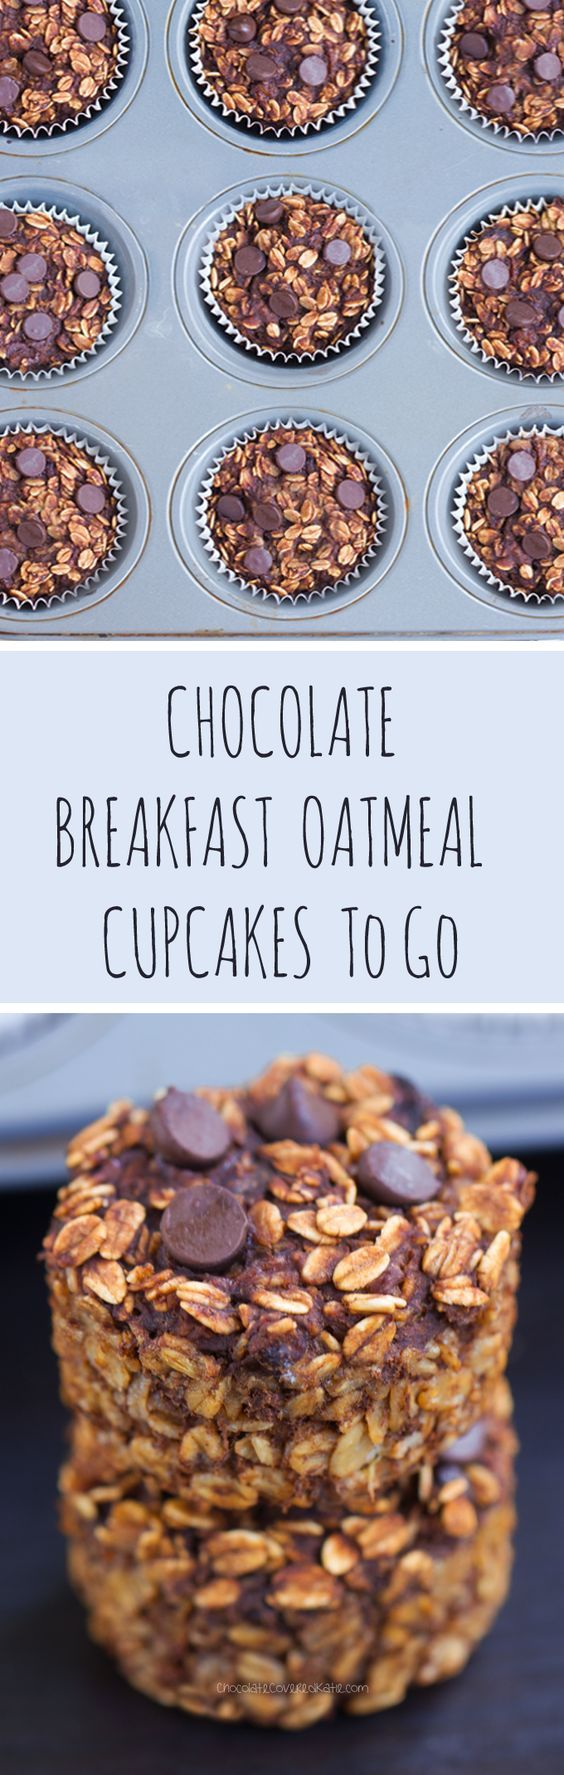 You cook just ONCE and get a delicious breakfast for the entire month - Easy & nutritious recipe loved by kids and adults: http://chocolatecoveredkatie.com/ @choccoveredkt: